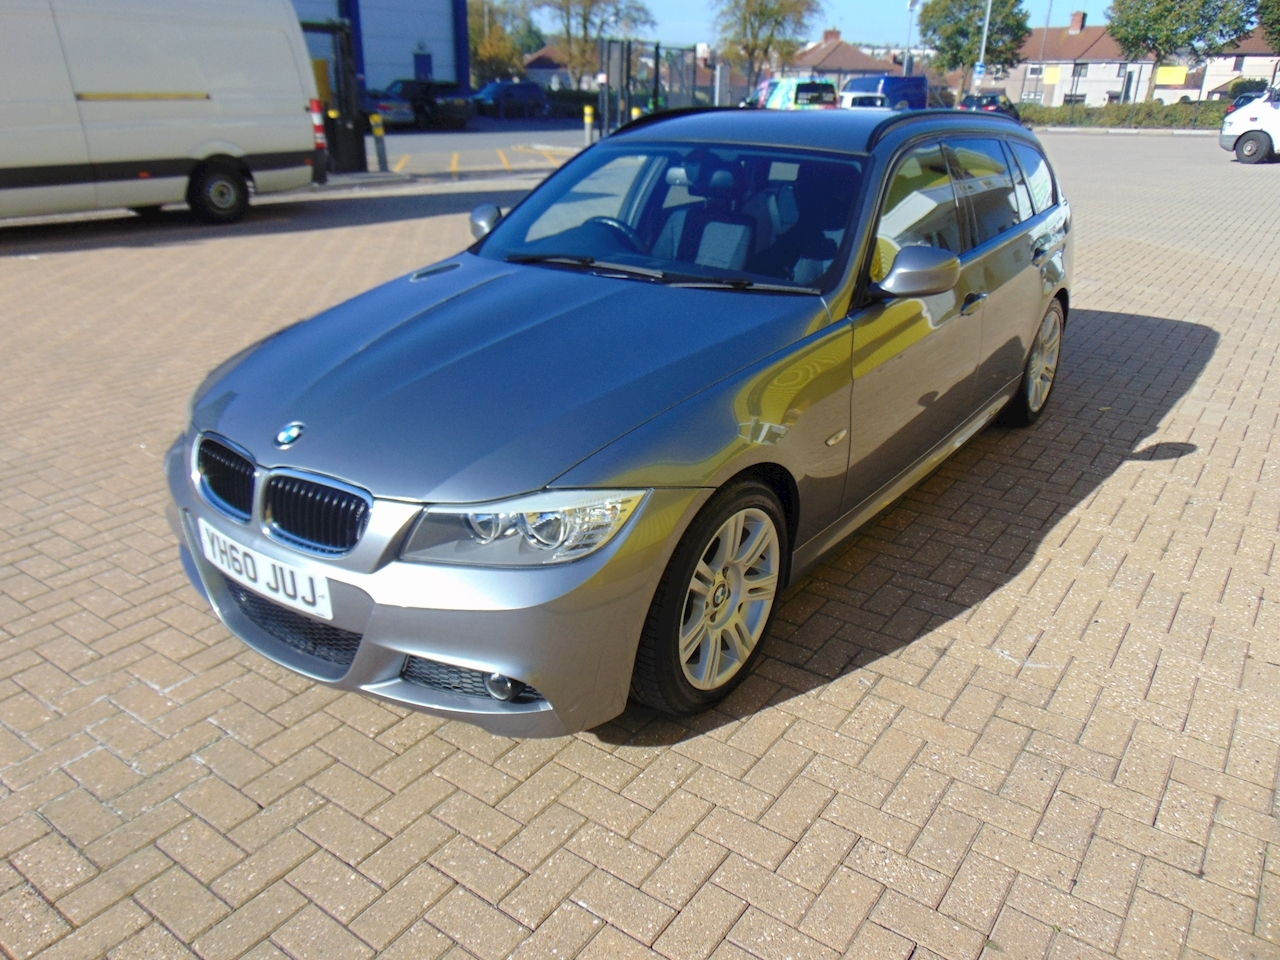 Used Bmw 3 Series 318D M Sport Touring | Car Imports Direct Ltd t/a